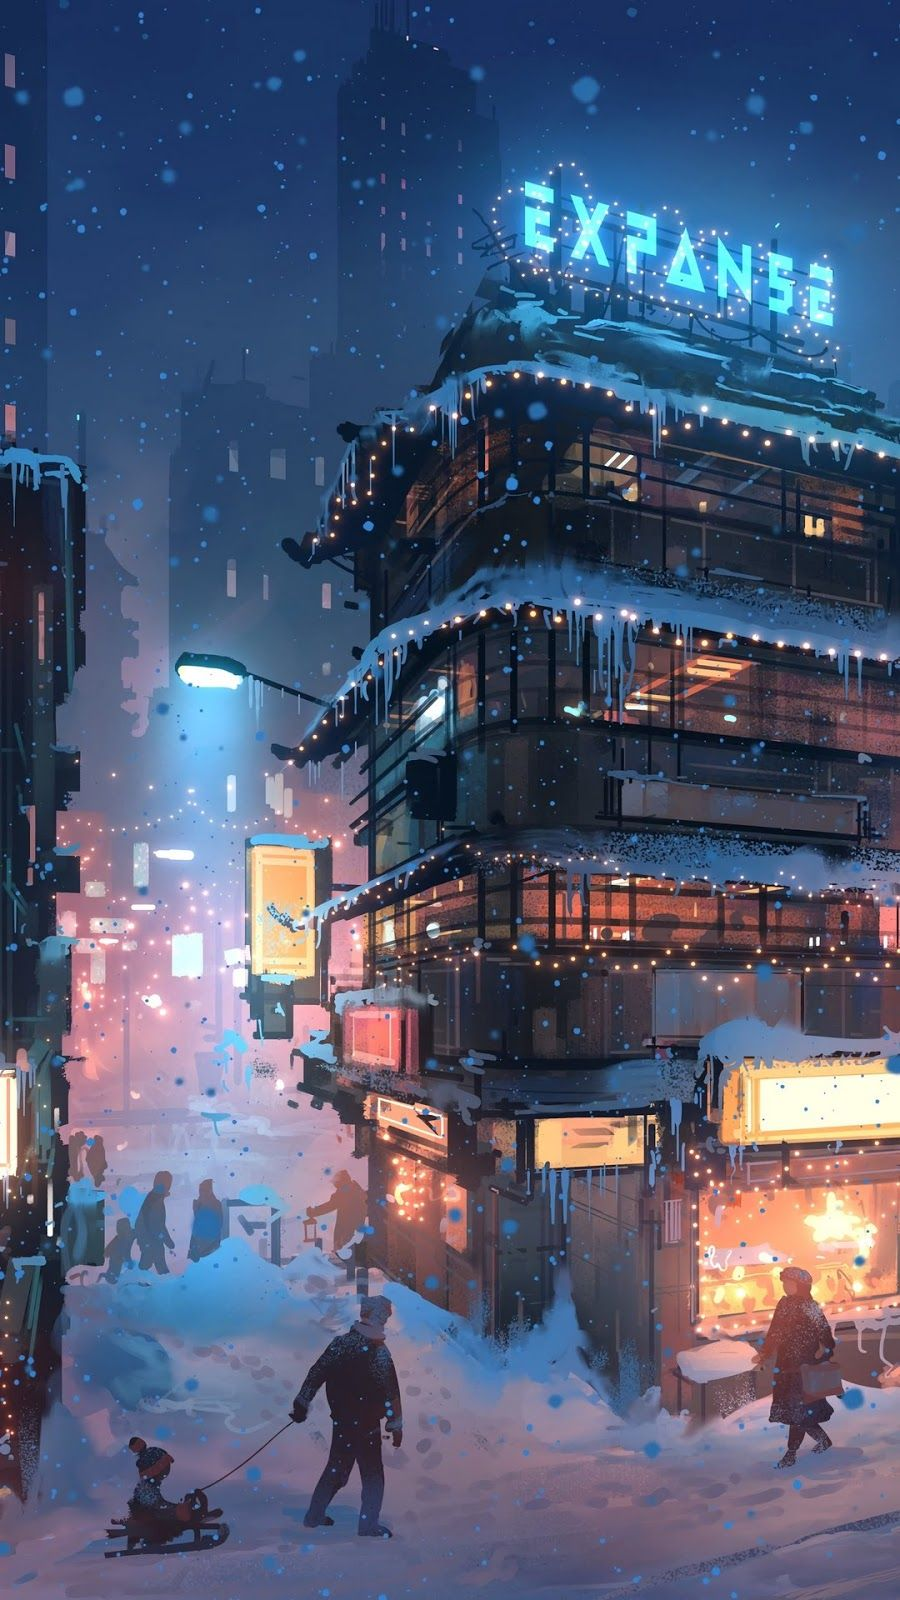 City Winter Digital Art Mobile Wallpaper Snow People Futuristic City Cyberpunk City City Background